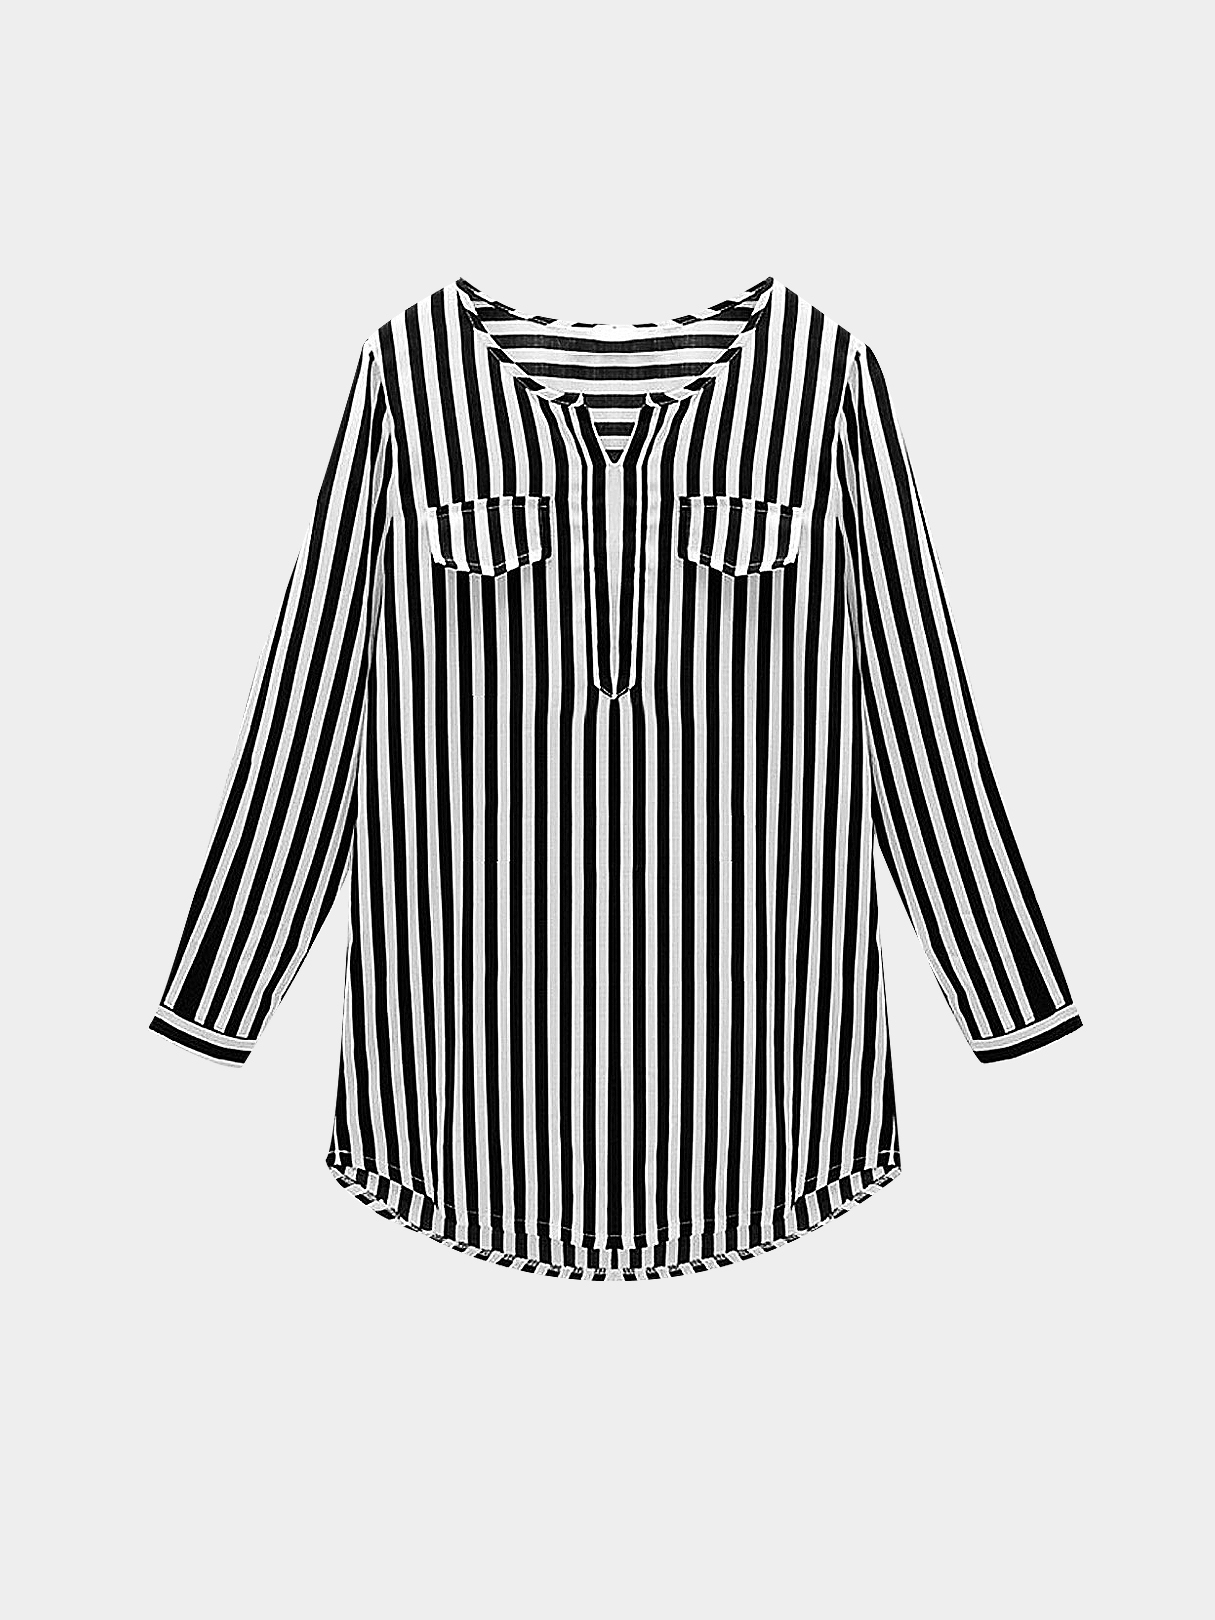 7c5ca37ffbc Plus Size Black Vertical Striped Shirt - US$17.95 -YOINS